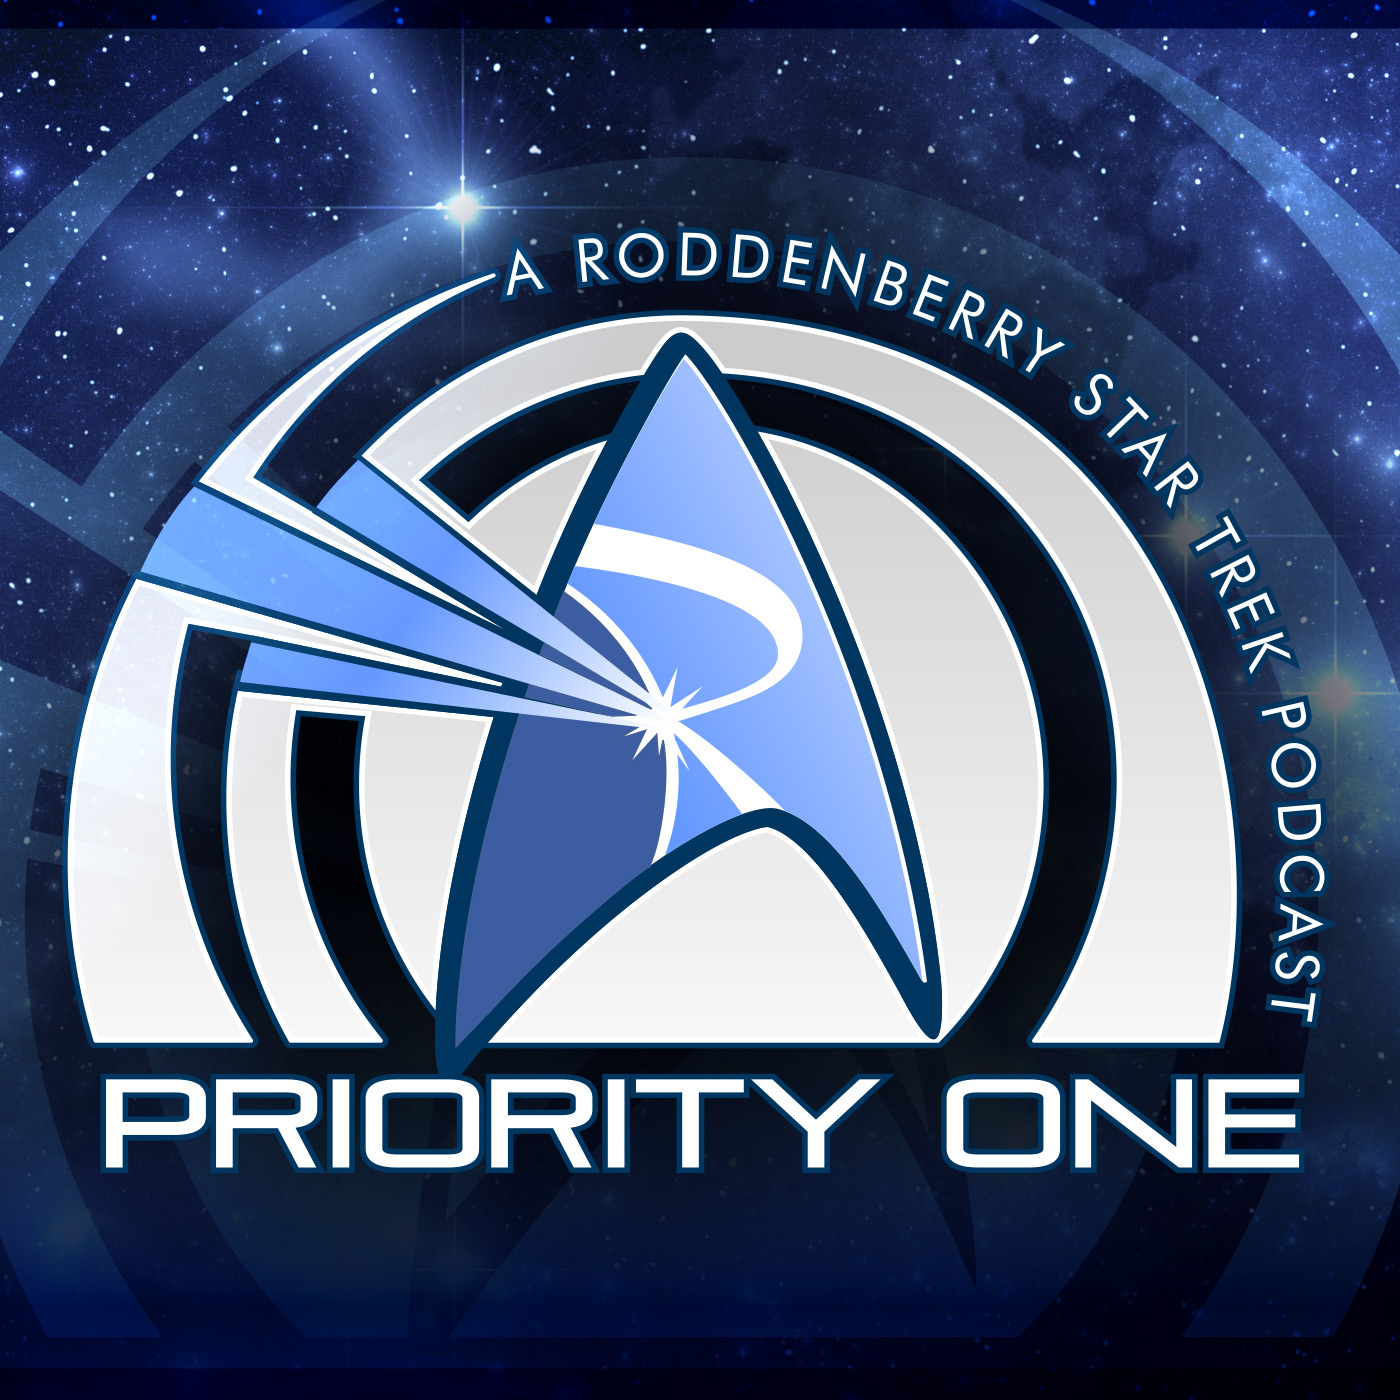 Artwork for 380 - The Stars over Trekonderoga | Priority One: A Roddenberry Star Trek Podcast